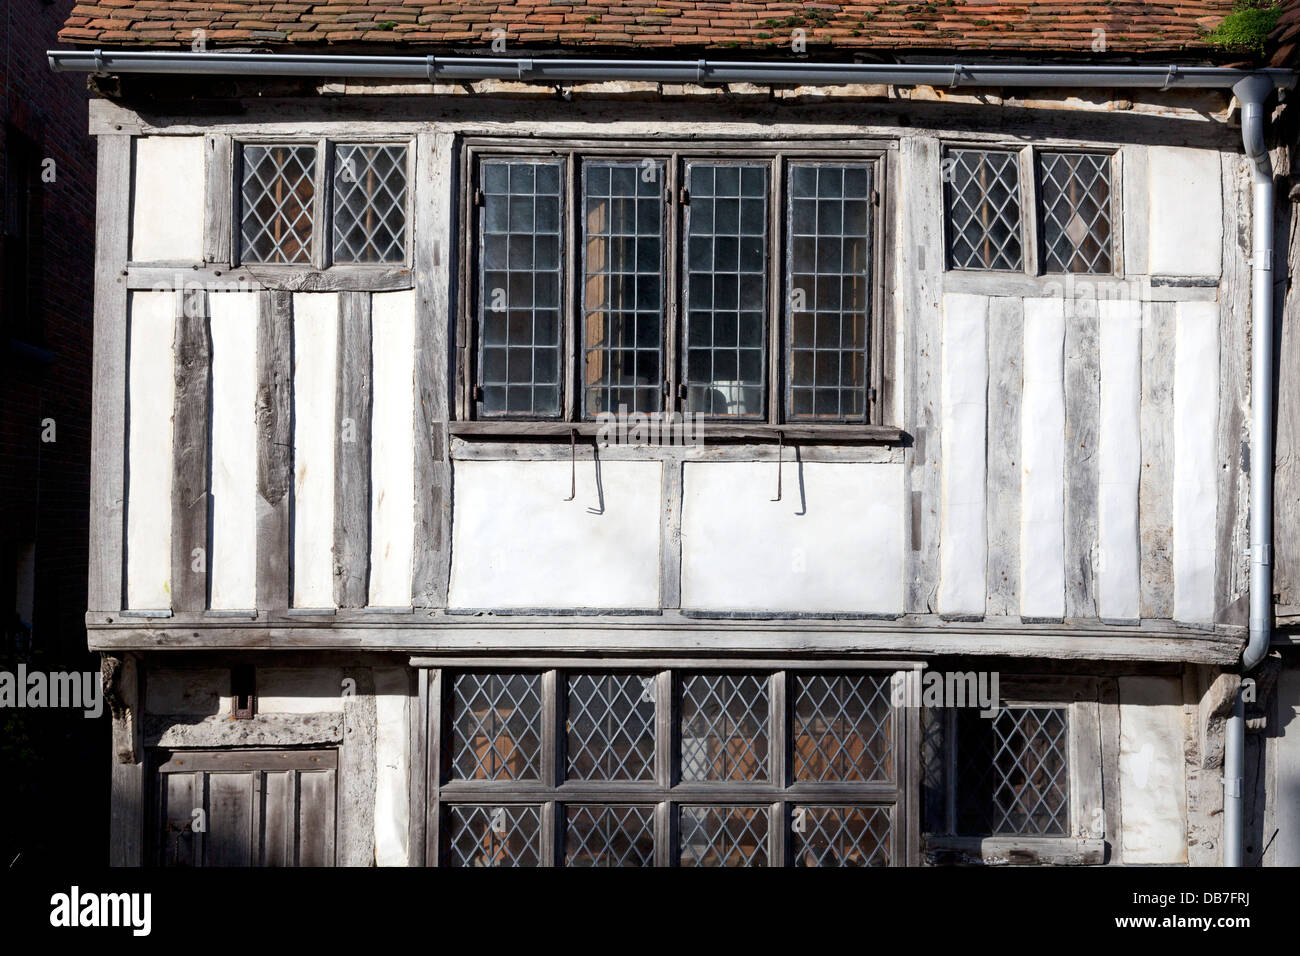 Medieval house frontage in Hastings Old Town, East Sussex - Stock Image